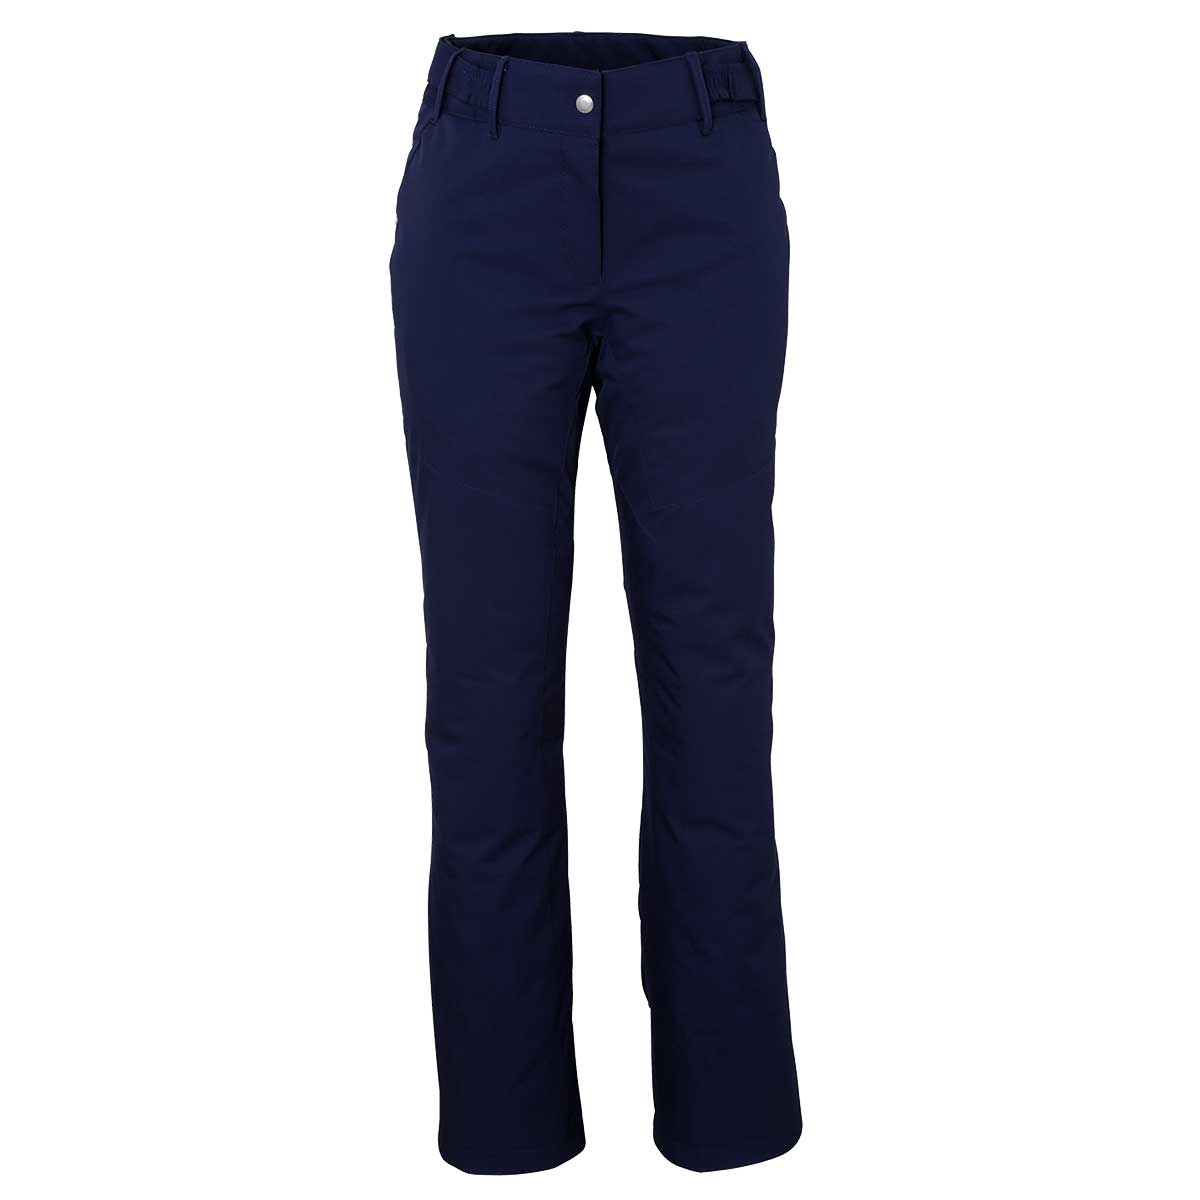 Phenix women's Orchid Pant in Dark Navy front view